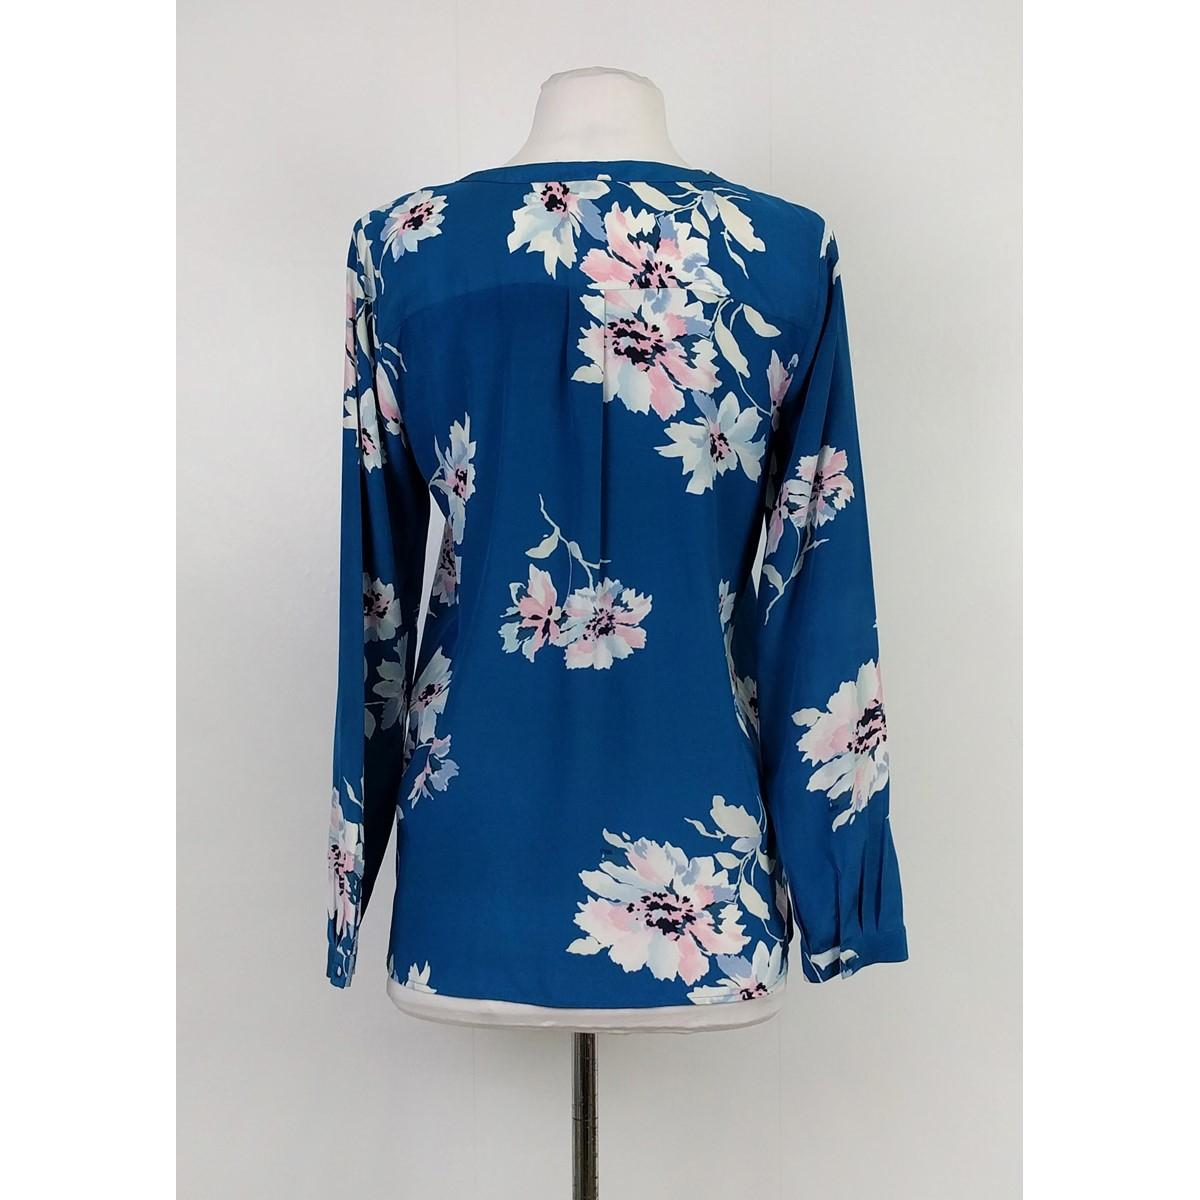 joie blue teal floral blouse size 0  xs